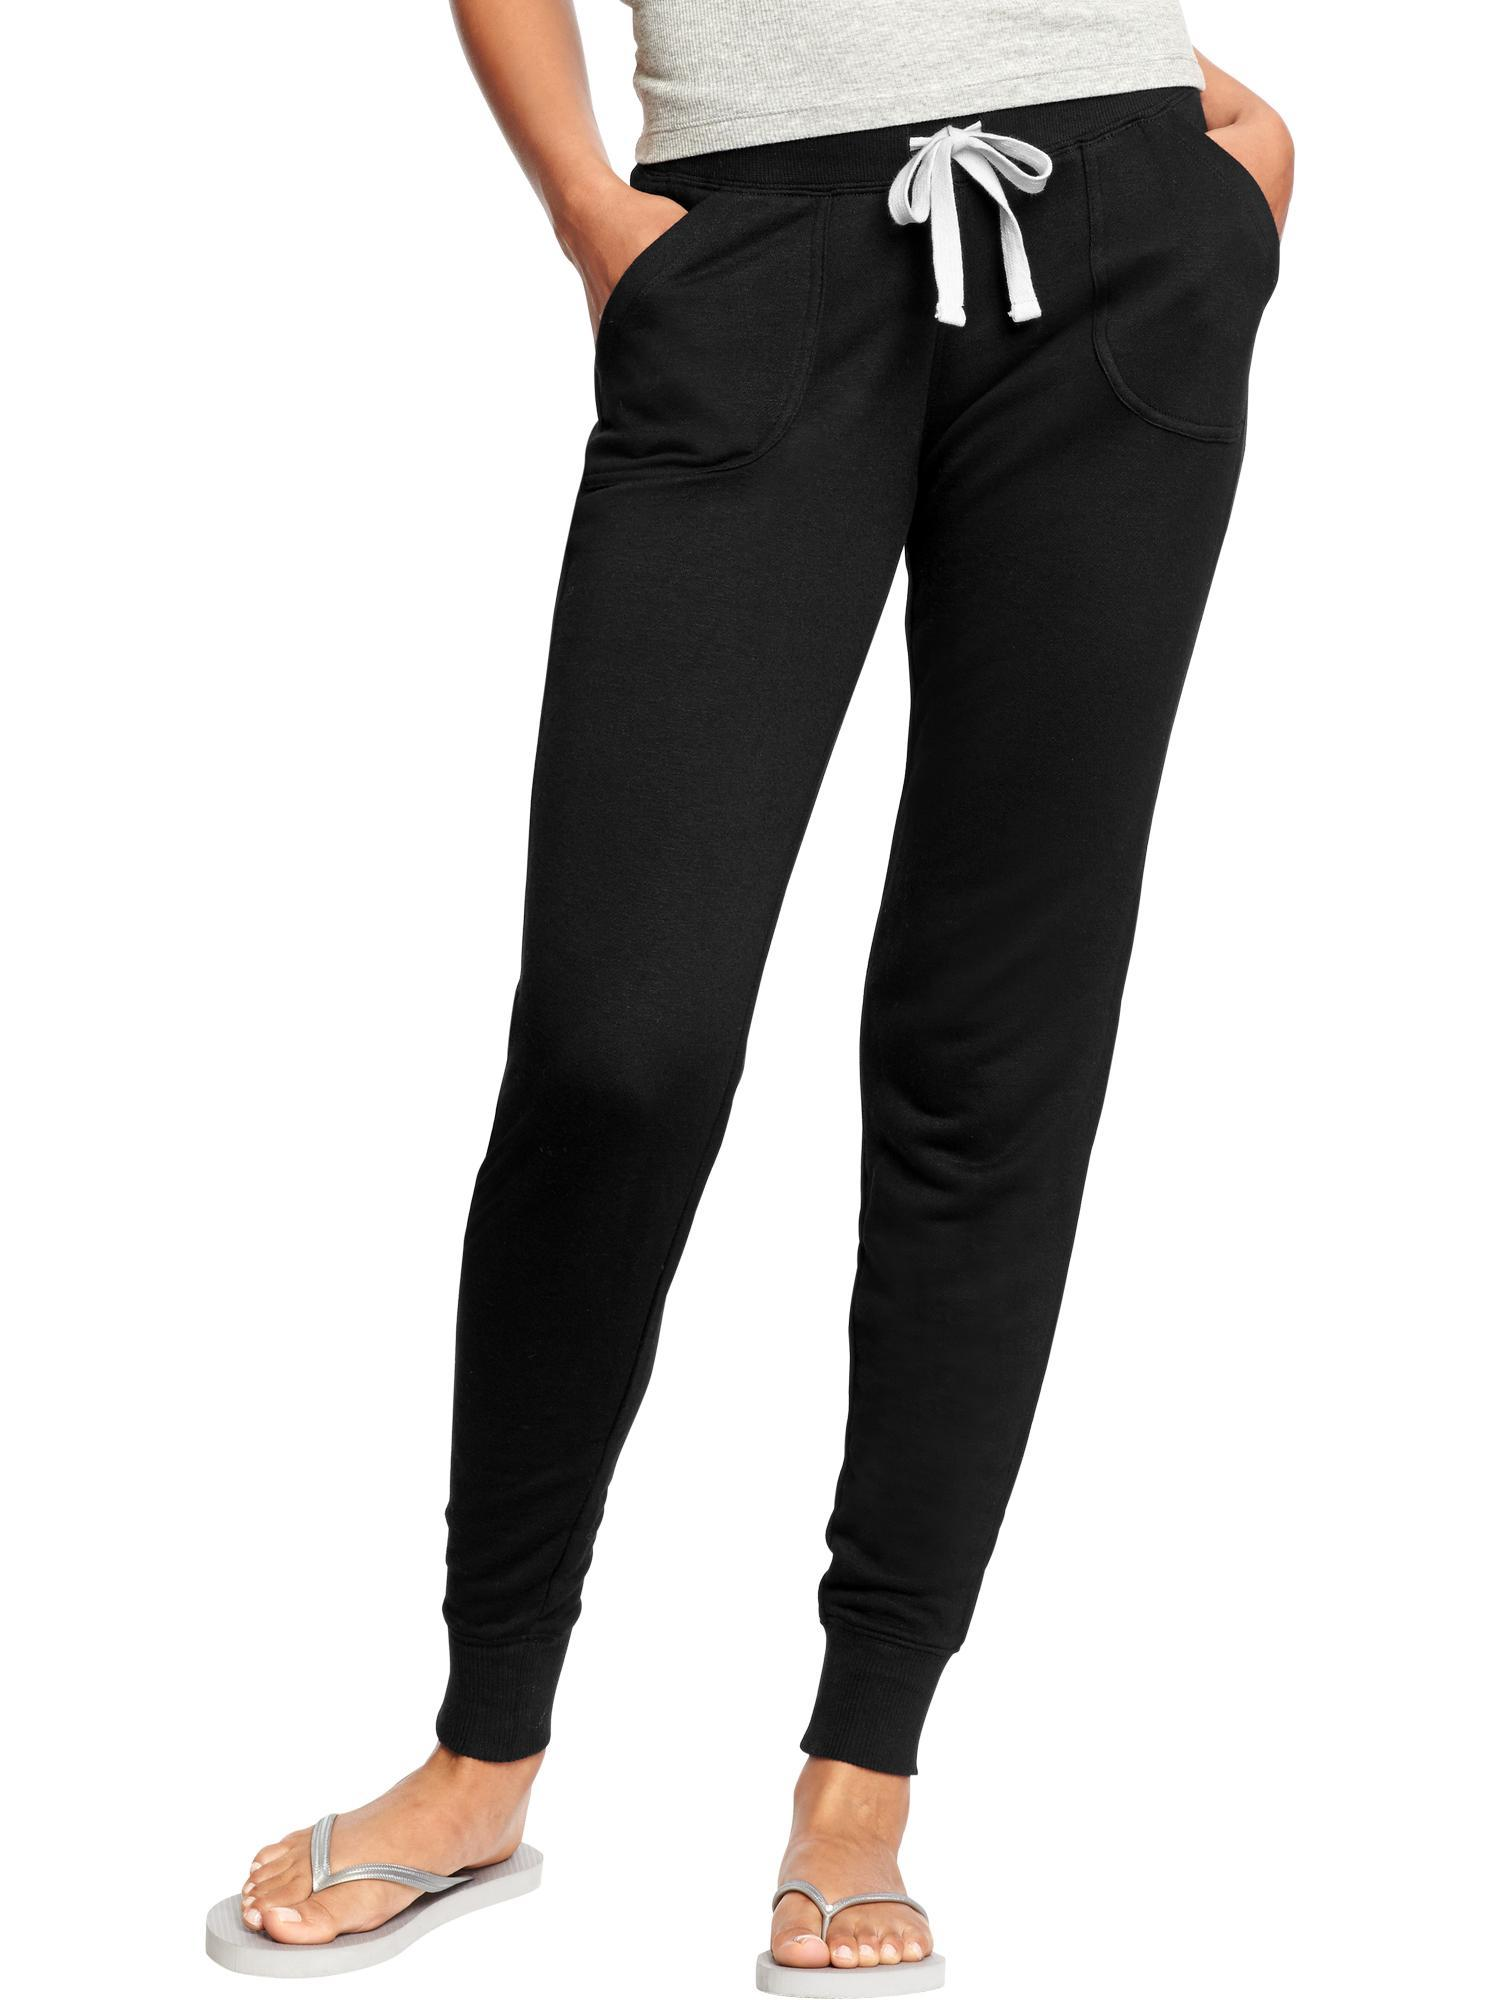 Free shipping on skinny pants for women at ggso.ga Shop for skinny trousers, ankle pants, sweatpants and more in the latest colors and prints. Enjoy free shipping and returns.